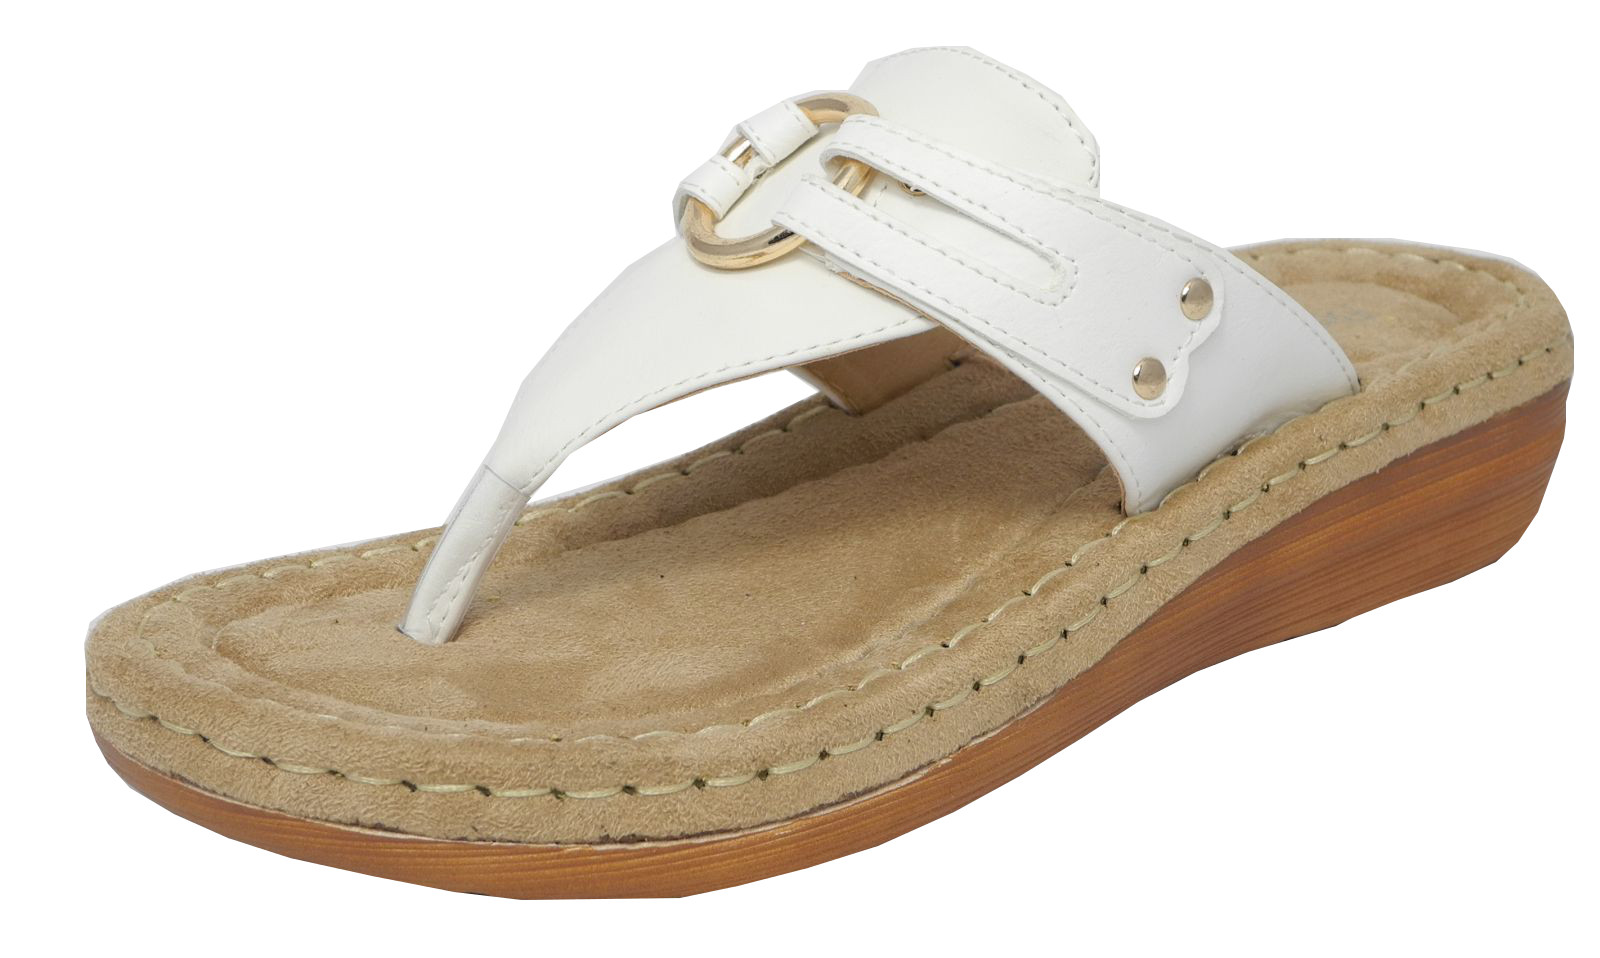 Free shipping on women's flip-flop sandals at cheswick-stand.tk Shop a variety of flip-flops and thong sandals from the best brands including Birkenstock, Tory Burch, Steve Madden and more. Totally free shipping & returns.